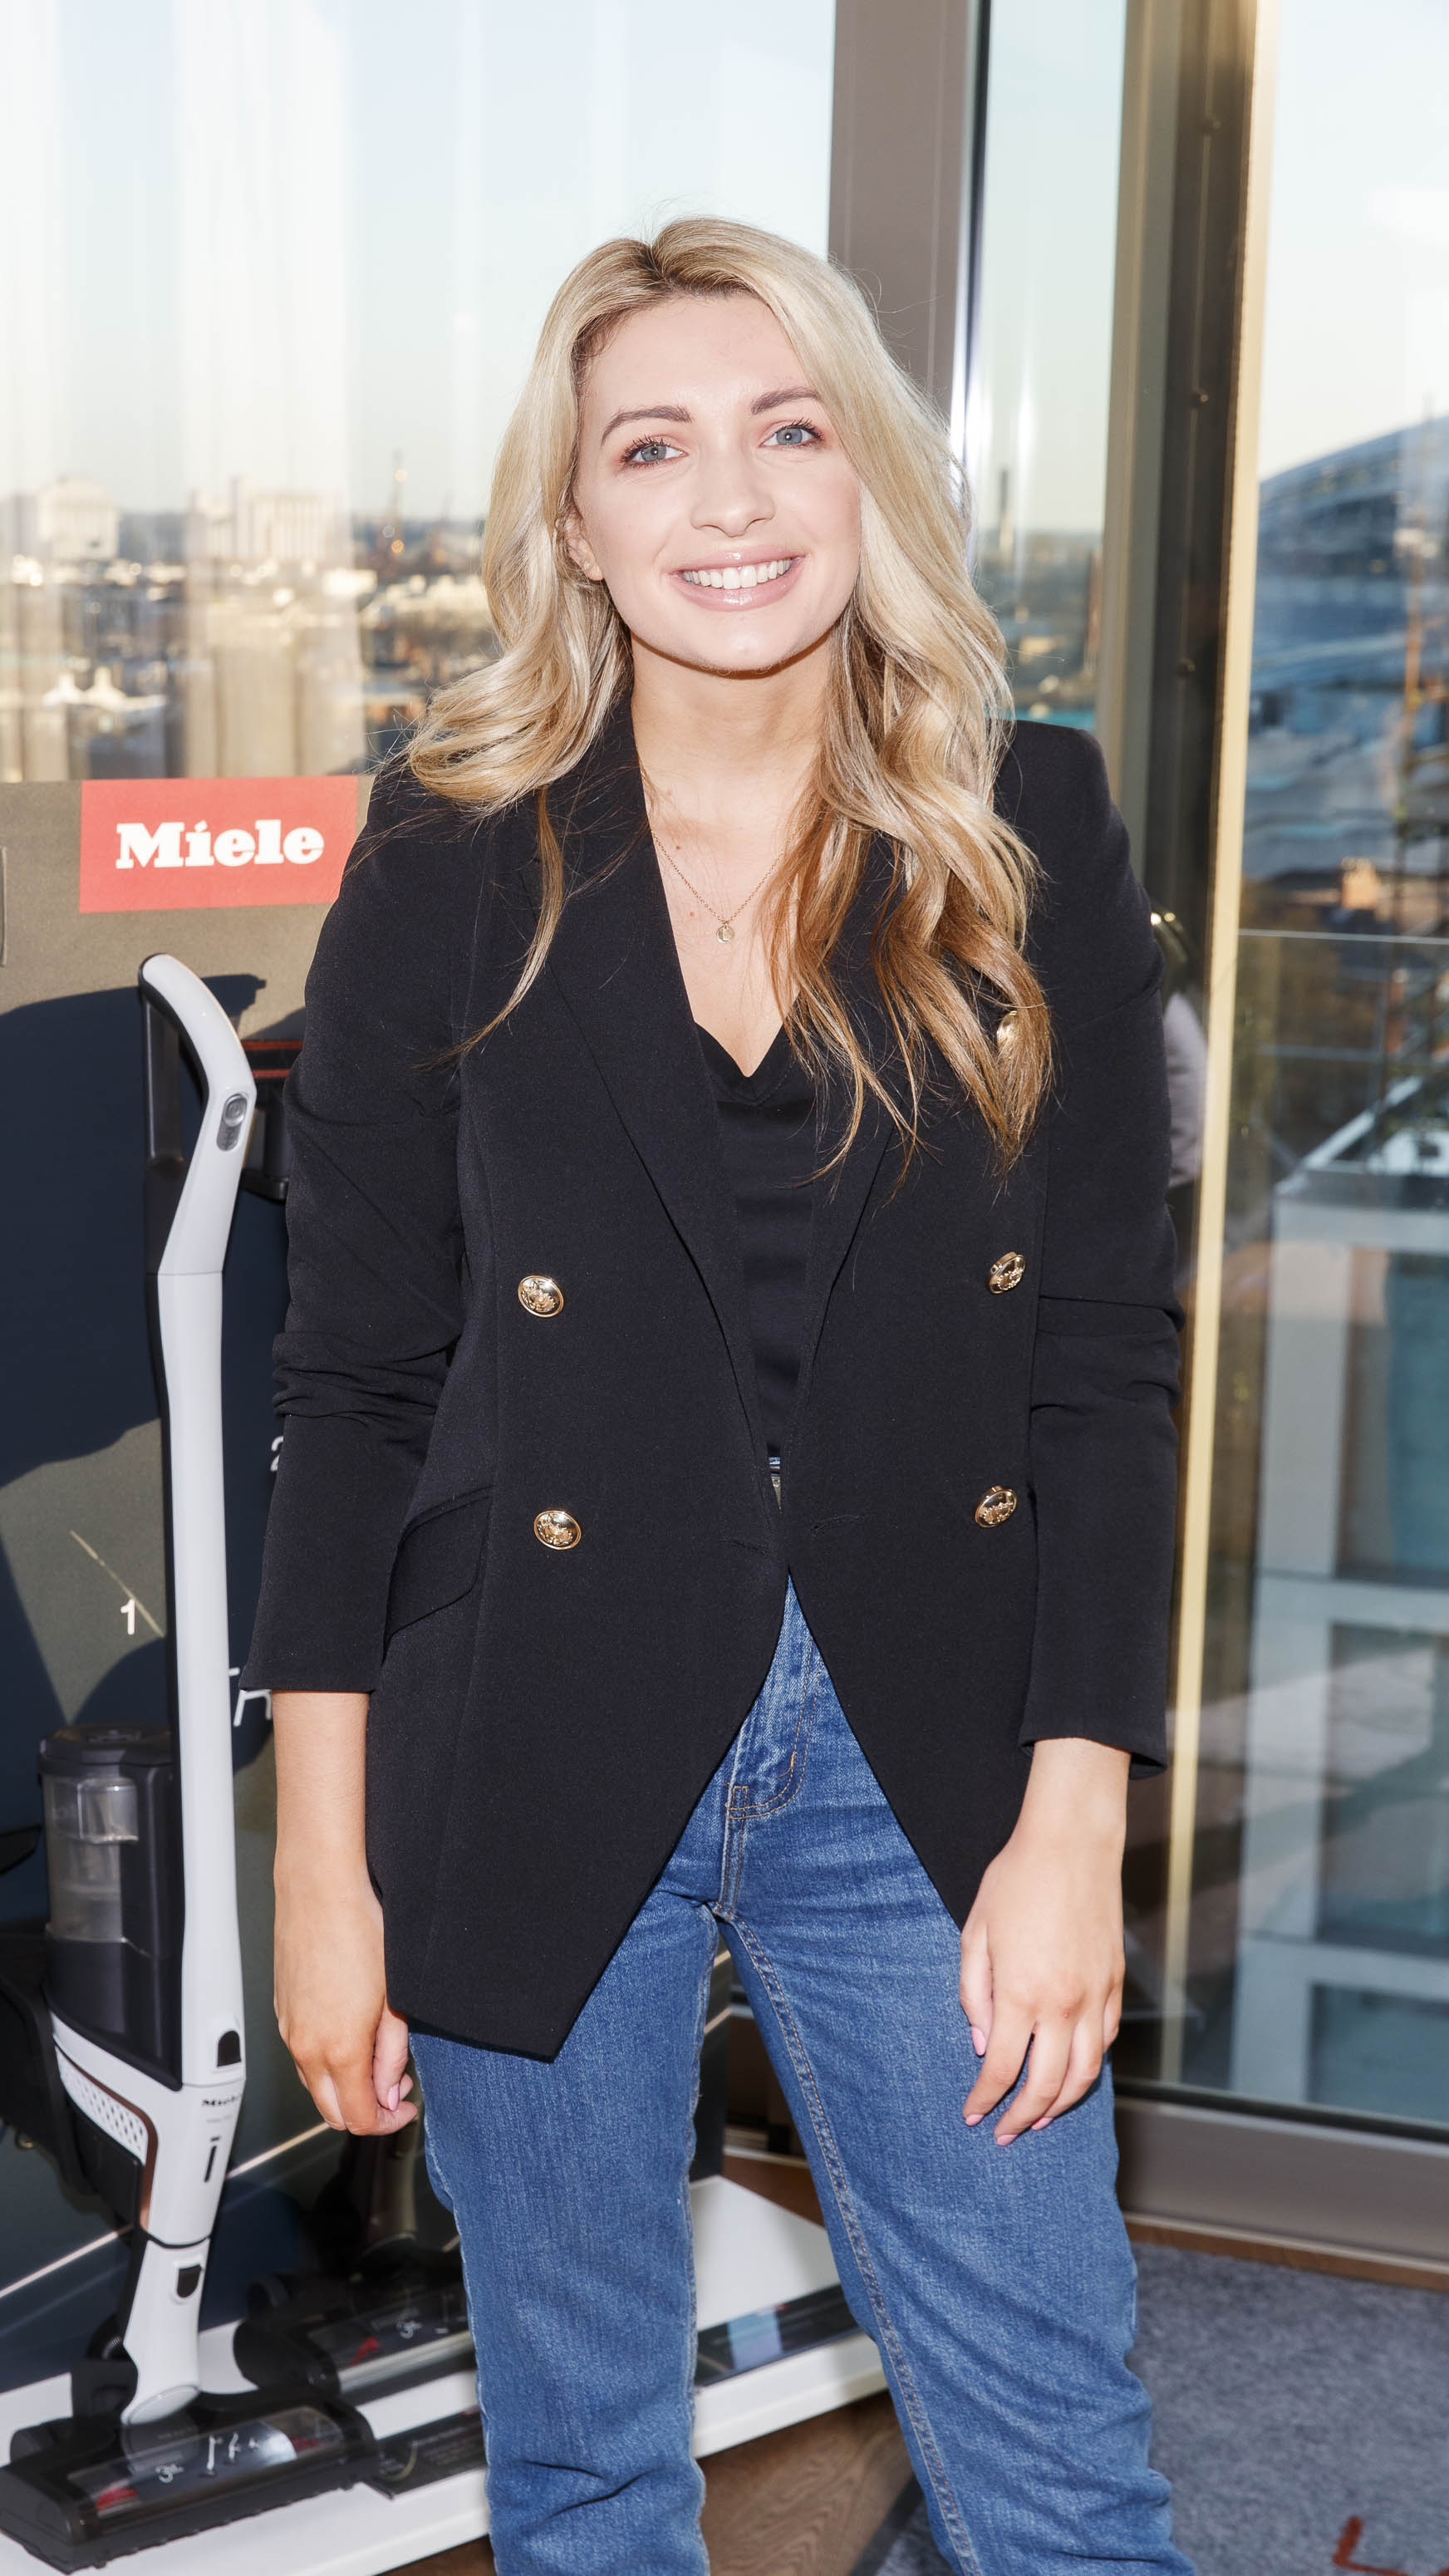 Laura Bergin pictured at the launch of Miele Triflex. The world's leading manufacturer of cylinder vacuum cleaners, Miele, unveiled its first ever cordless handstick model at the stunning Landsdowne Place penthouse. Hosted by Miele managing director, Pat McGrath and in conversation with Dermot Bannon and Ciara Elliott, guests experienced the ultimate cordless vacuum cleaner, which is available in all major retailers from €499. Picture Andres Poveda